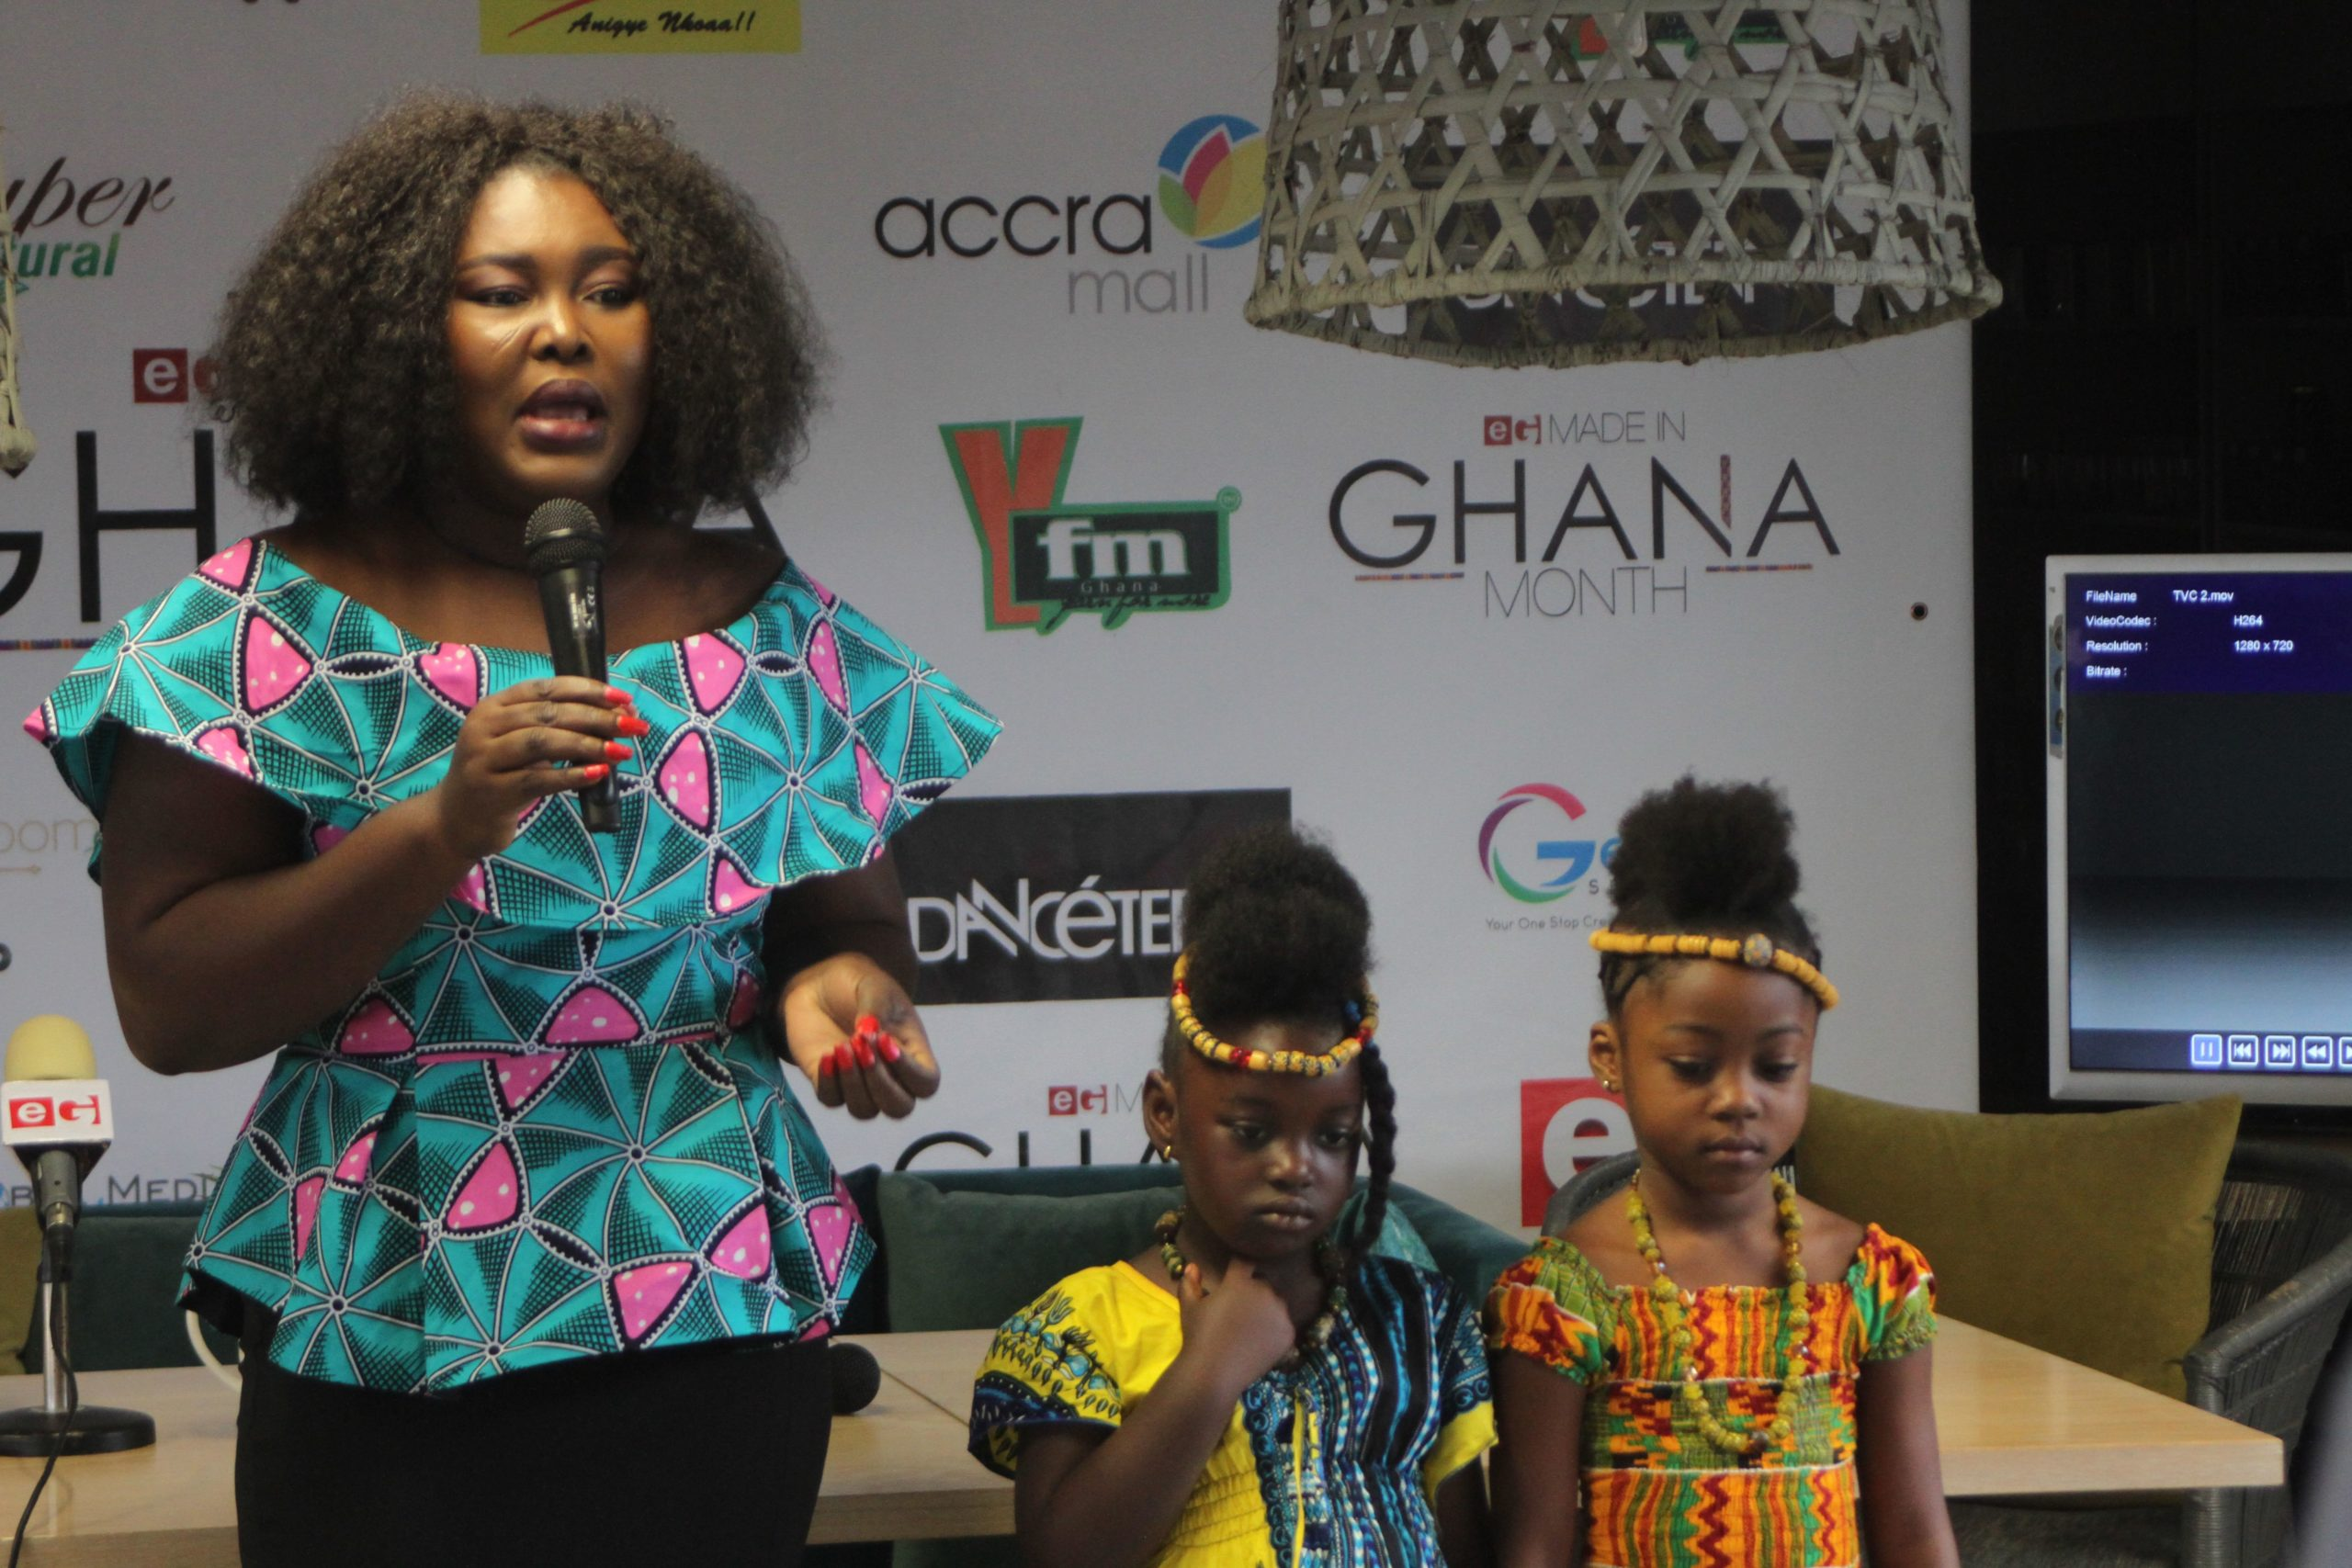 Photo: eTV Ghana Launches Made in Ghana Month